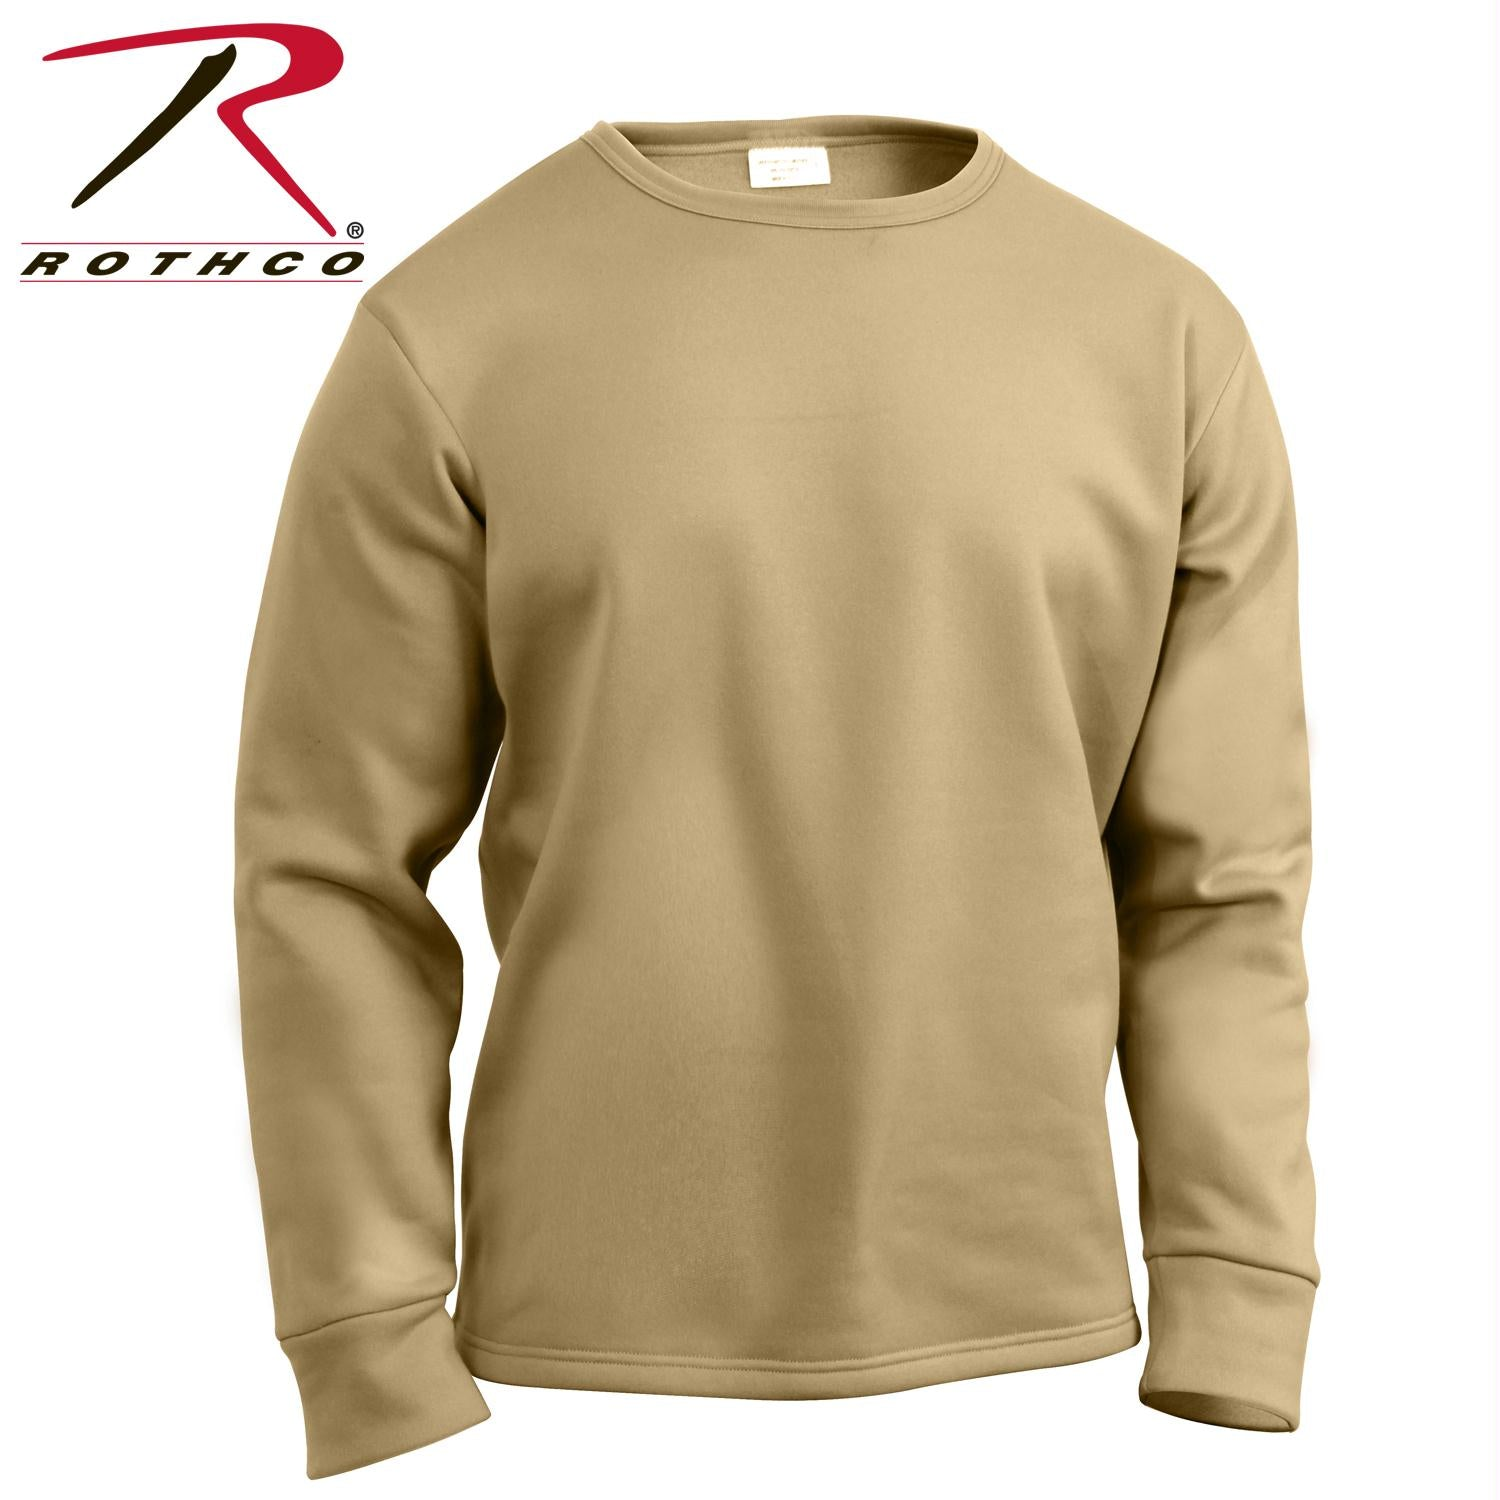 Rothco ECWCS Poly Crew Neck Top - AR 670-1 Coyote Brown / L